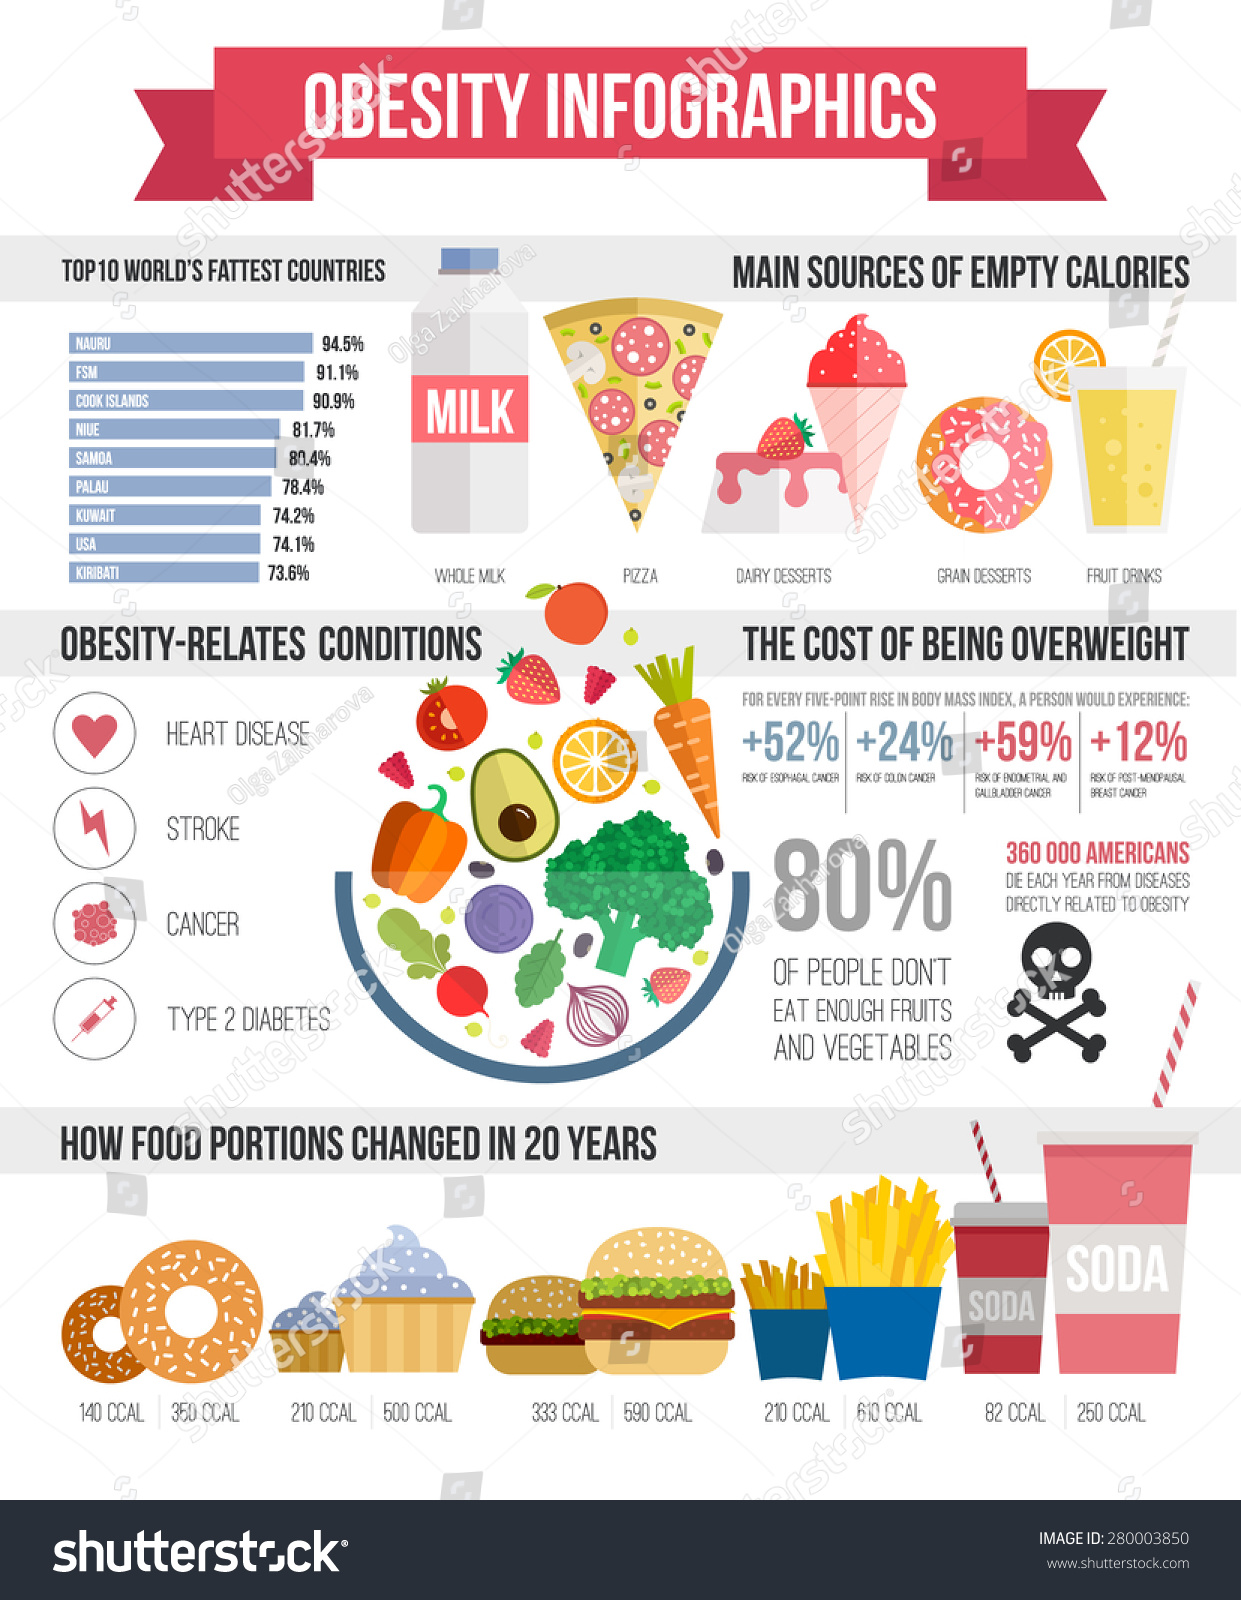 Statistical Data On Obesity And Fast Food